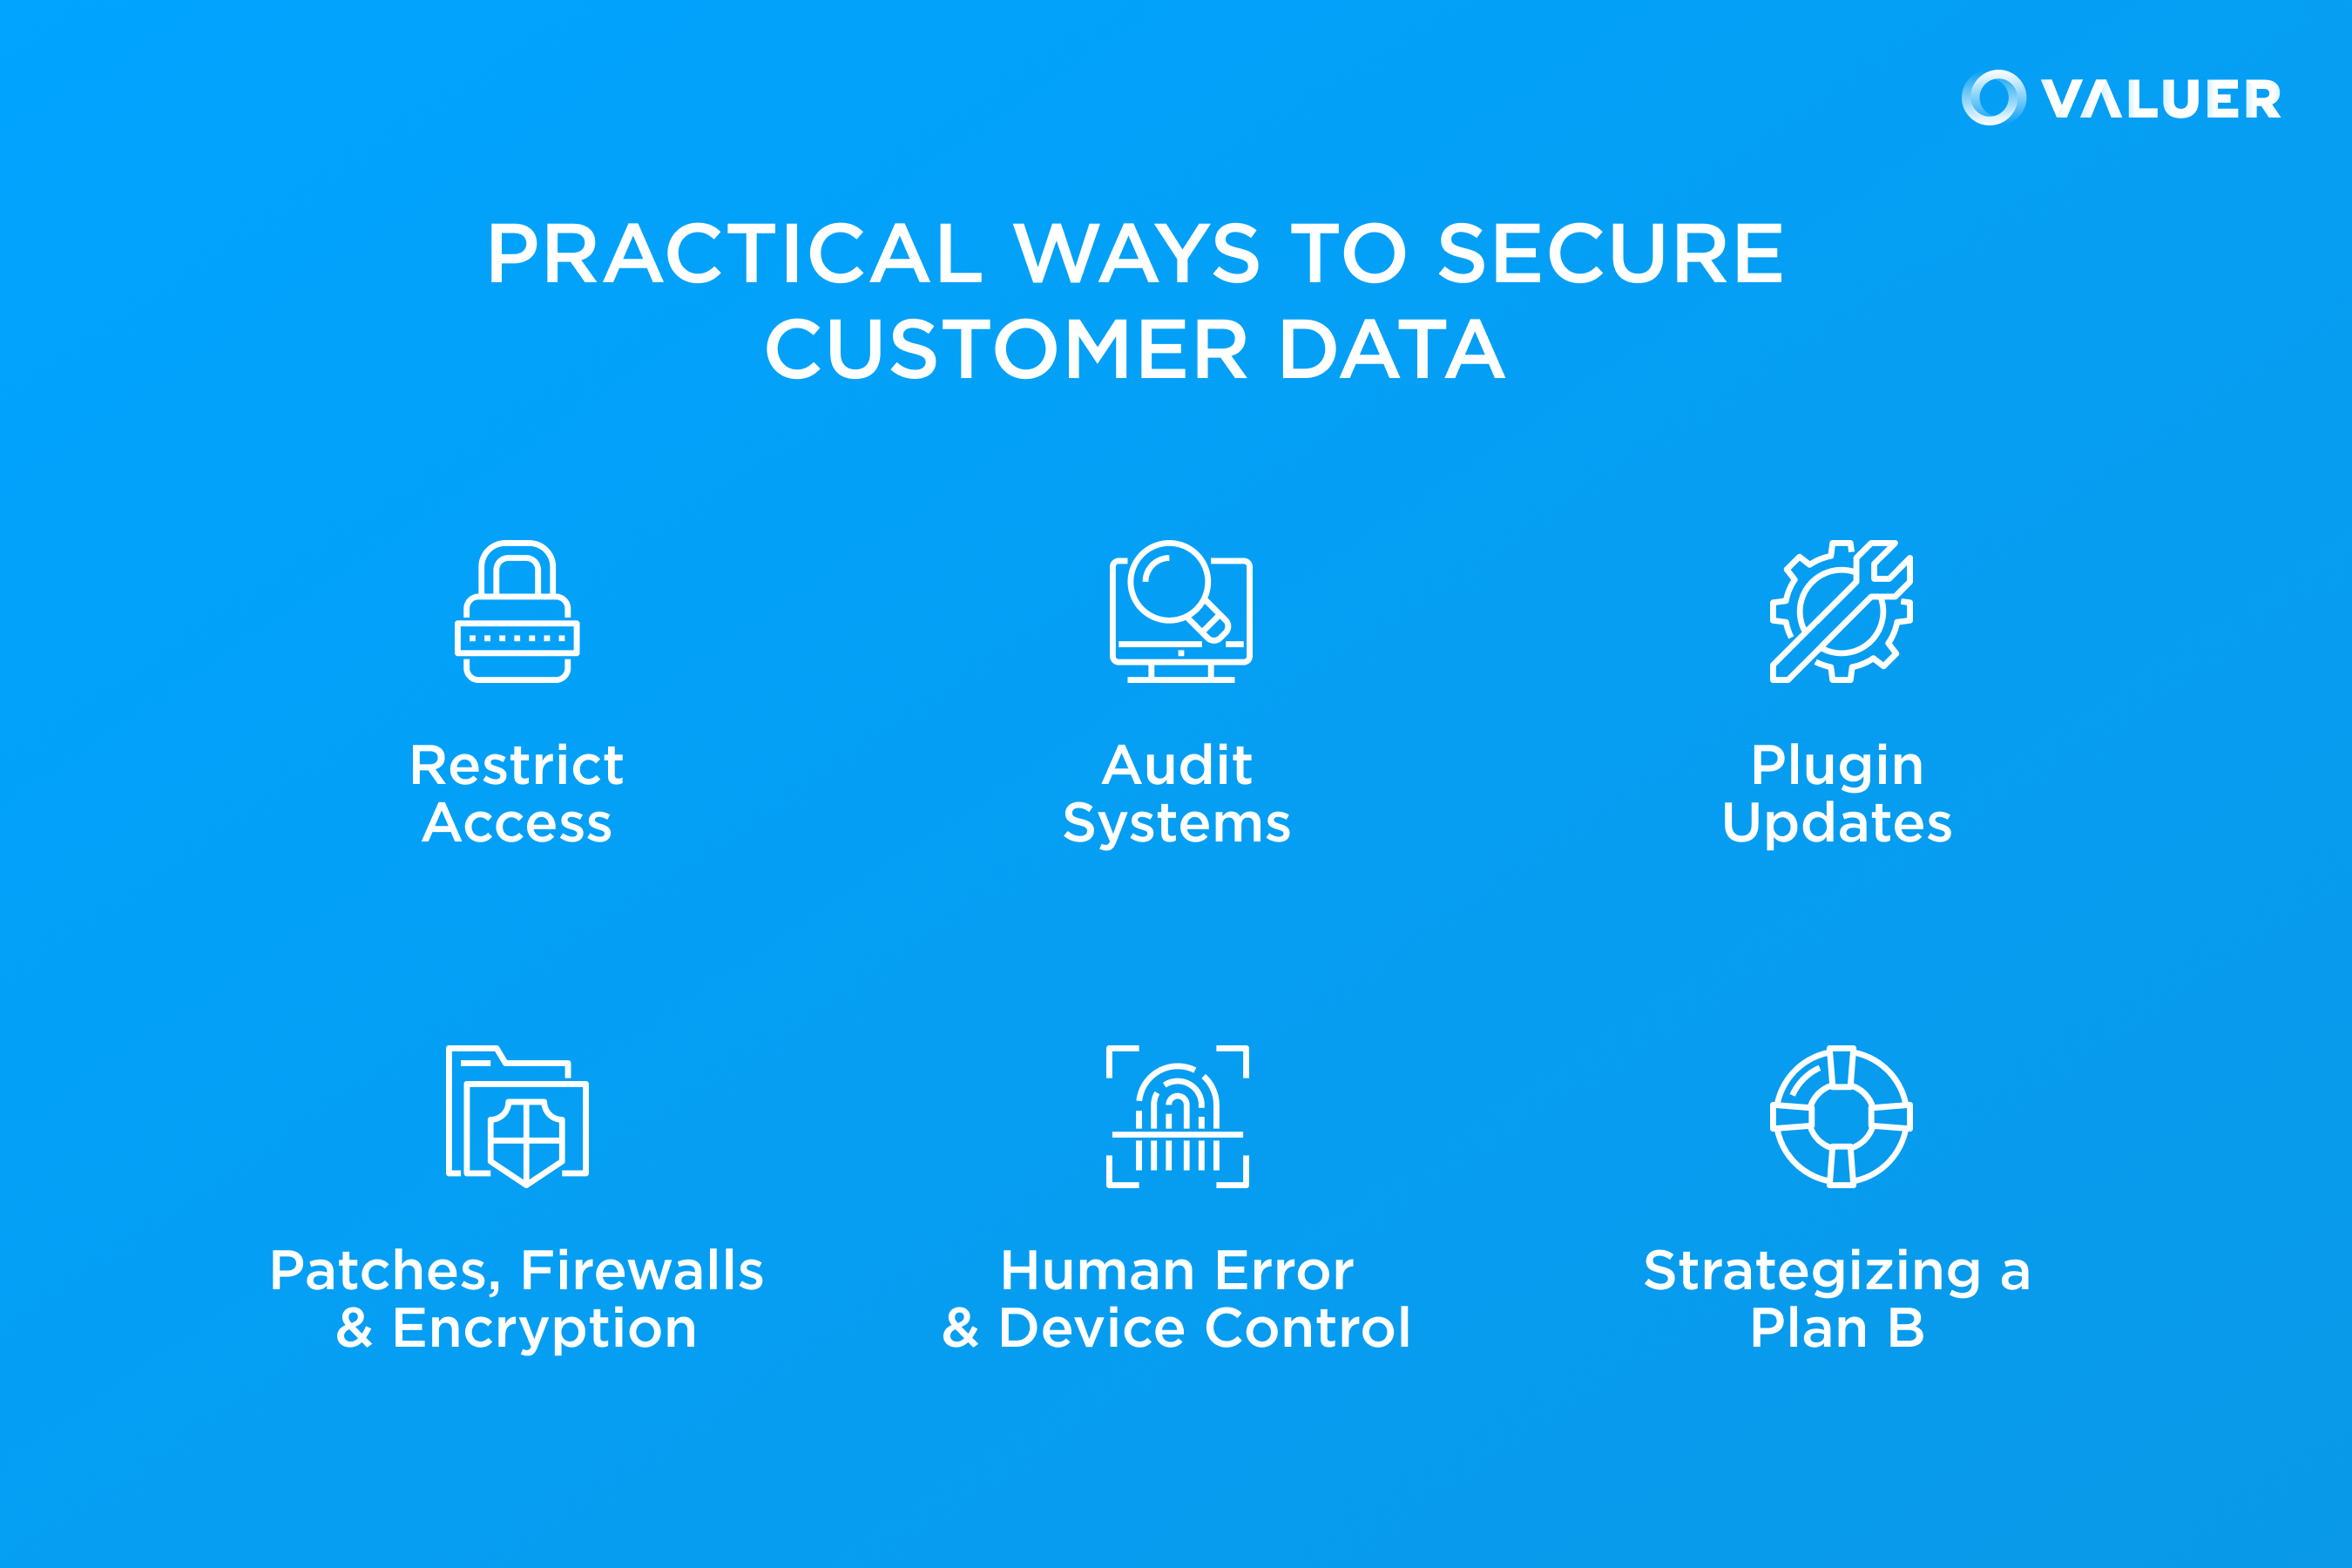 Practical Ways to Secure Customer Data